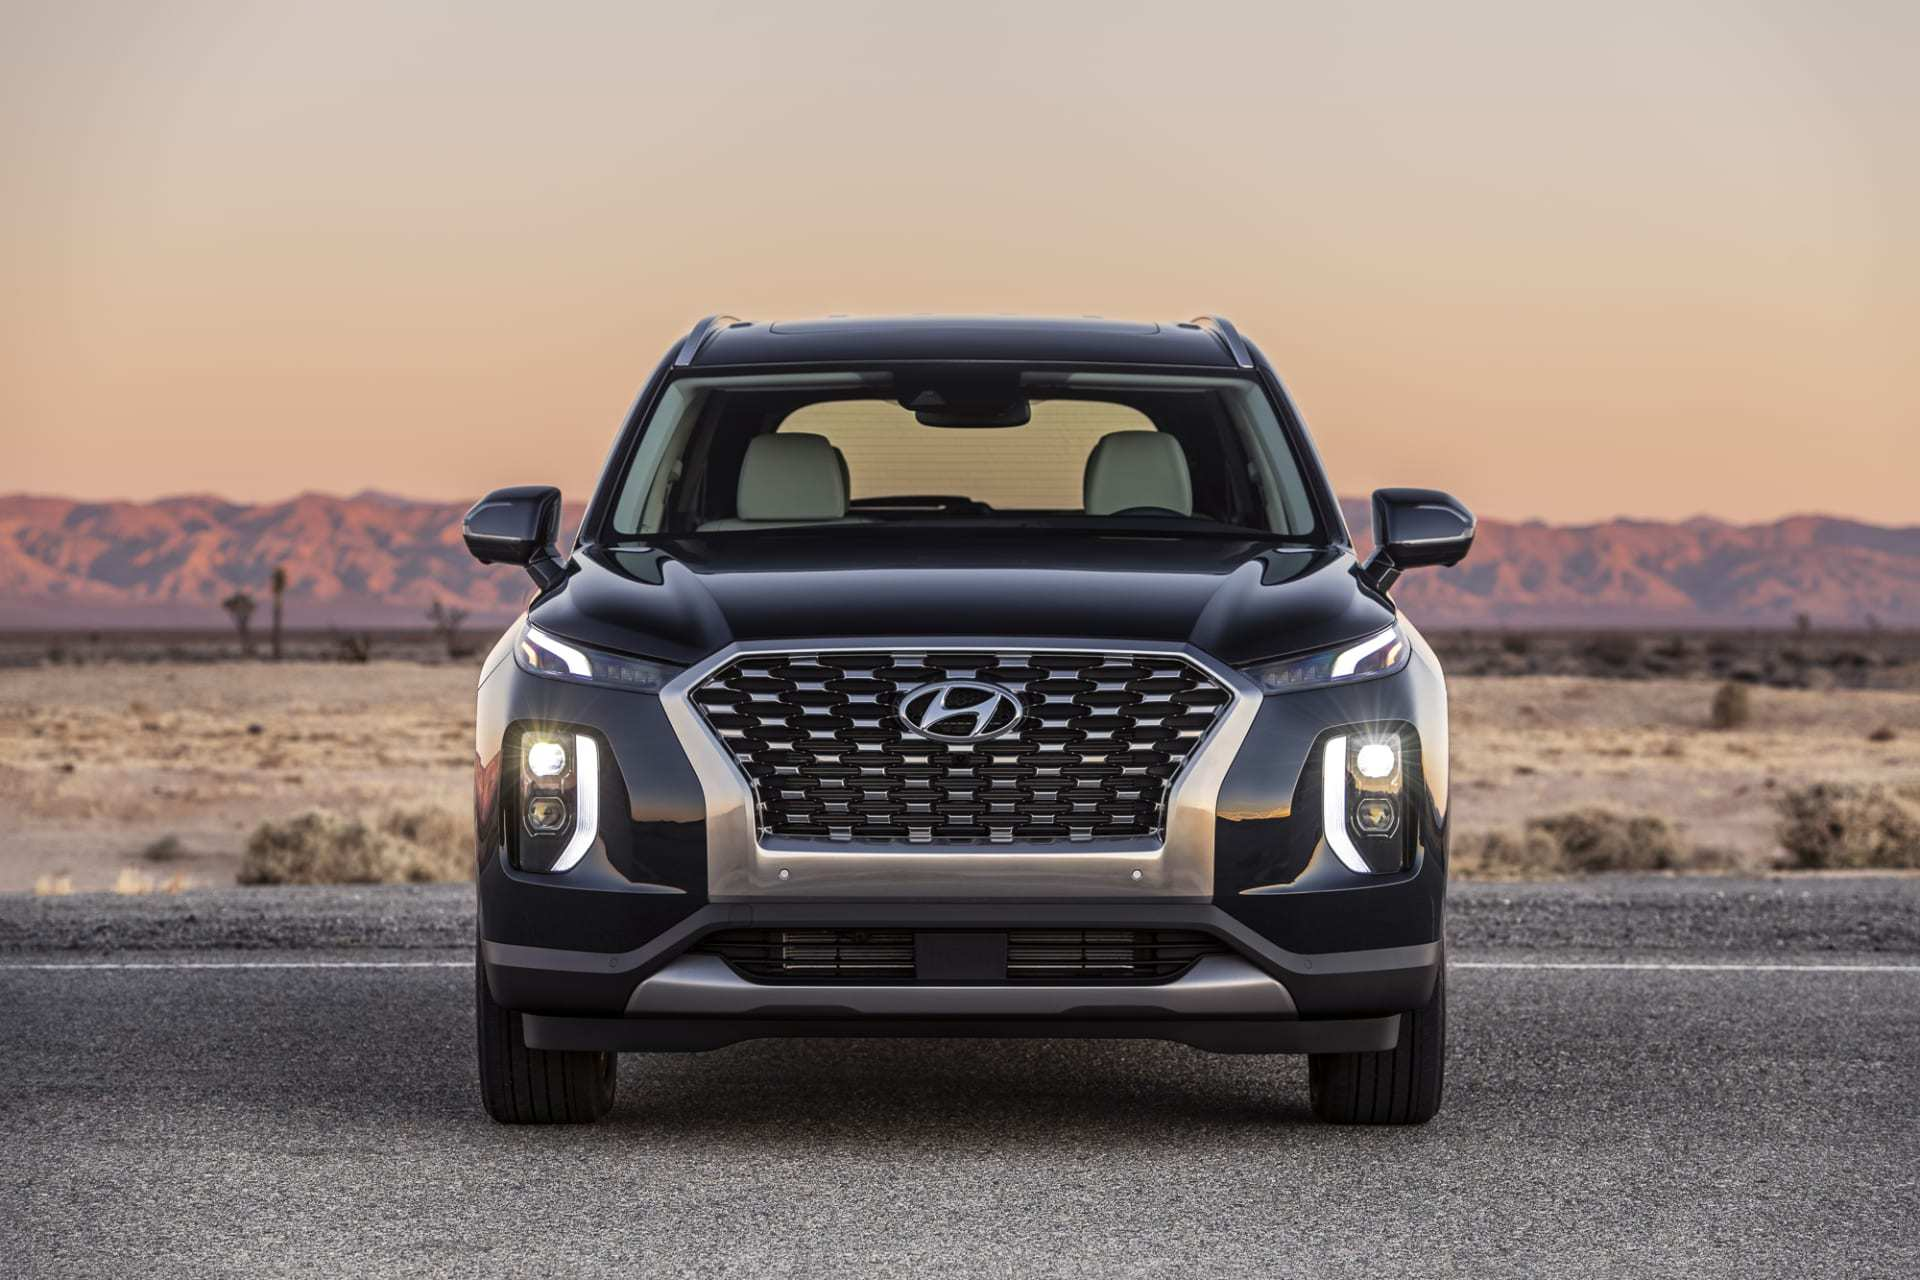 86 Great When Will The 2020 Hyundai Palisade Be Available Release with When Will The 2020 Hyundai Palisade Be Available